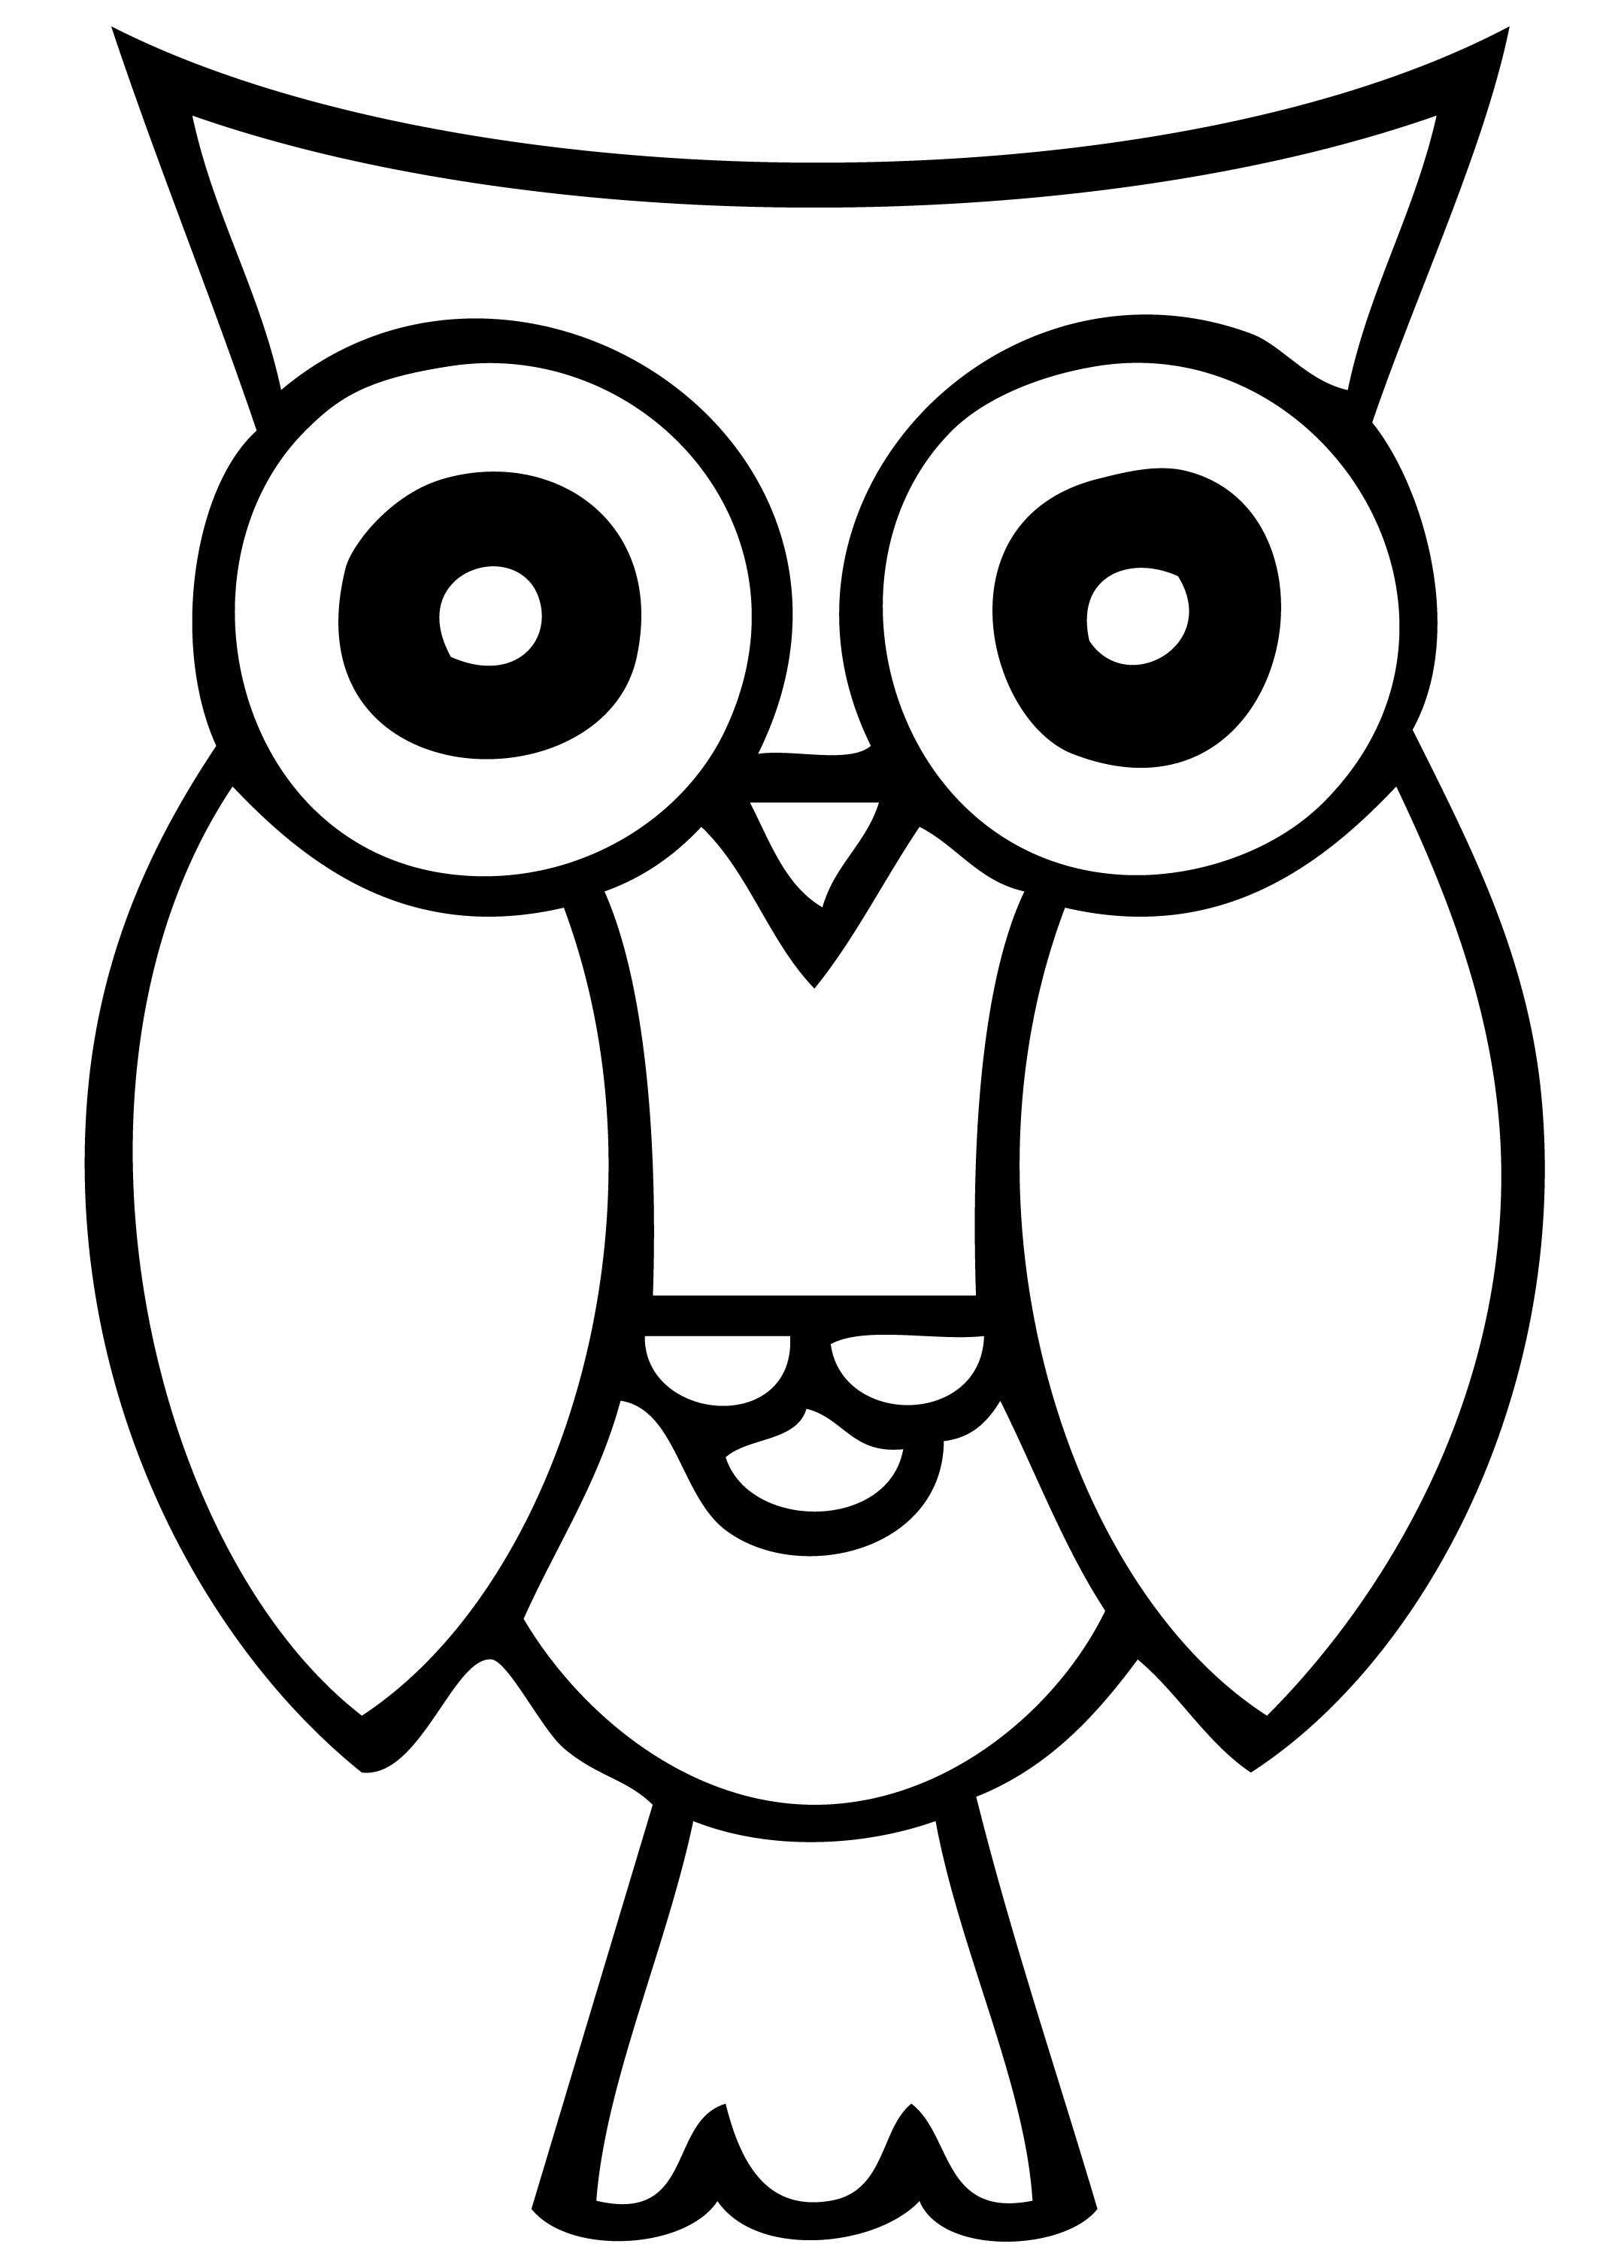 Free Owl Clipart Black and White Image.